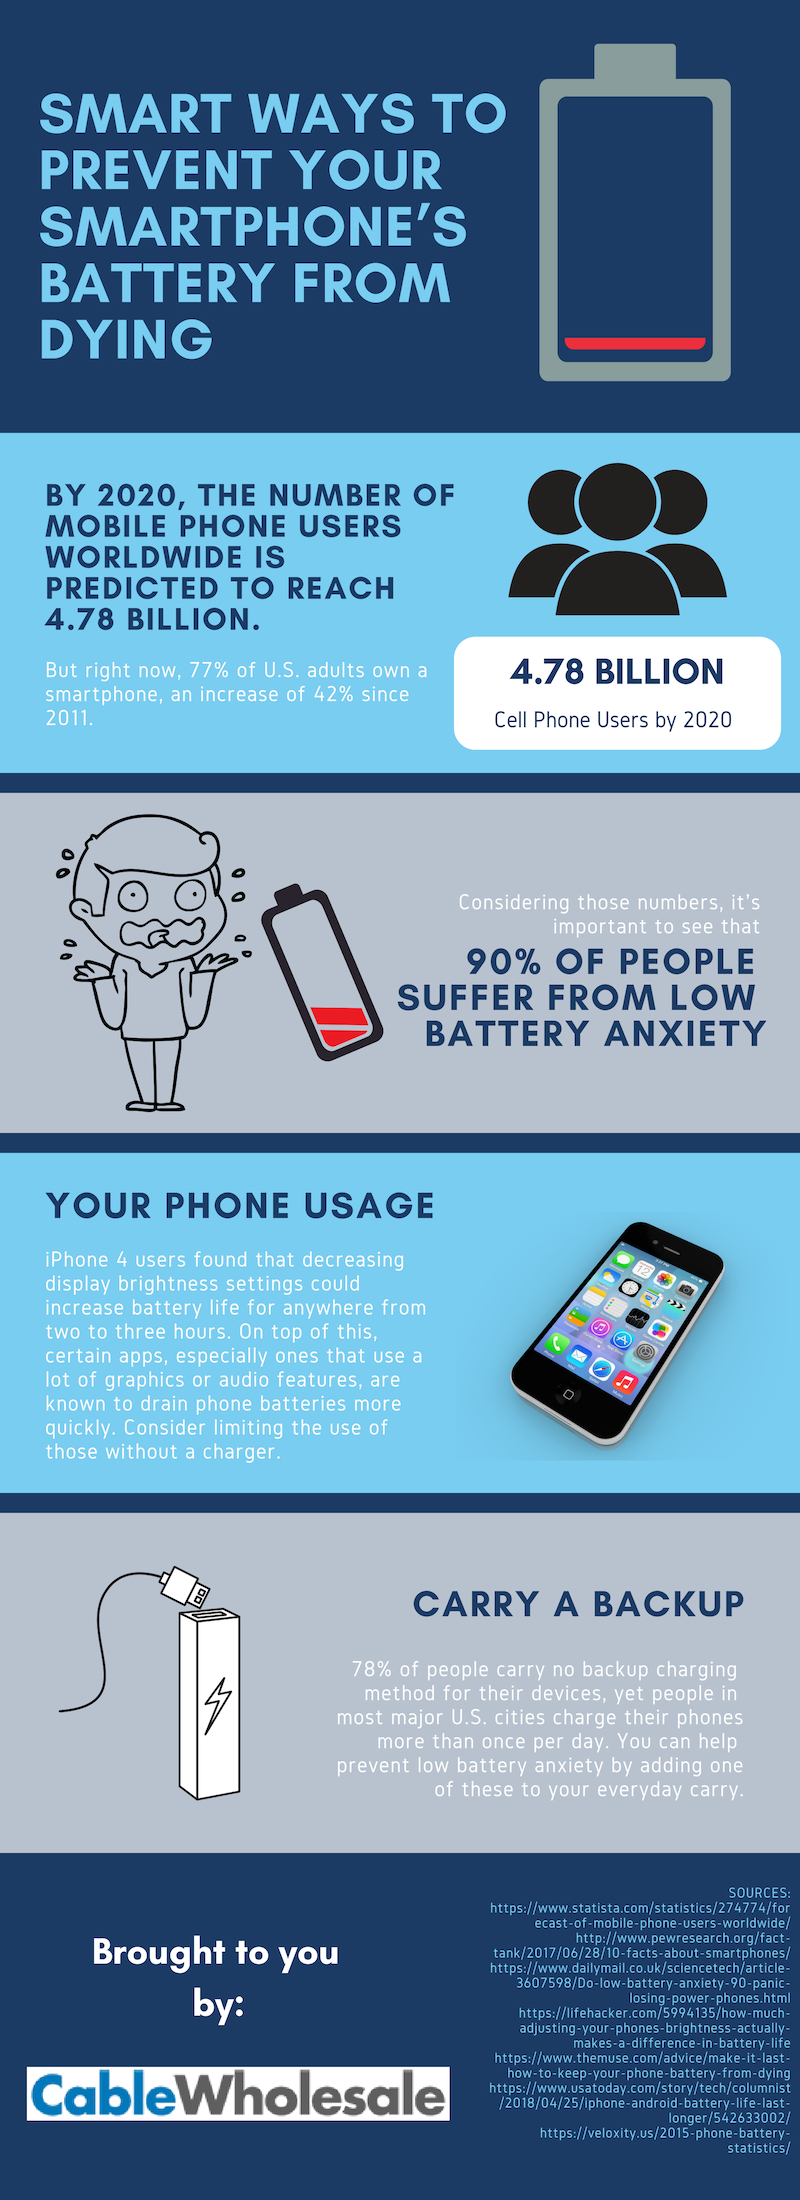 Smart Ways to Prevent Your Smartphone's Battery From Dying